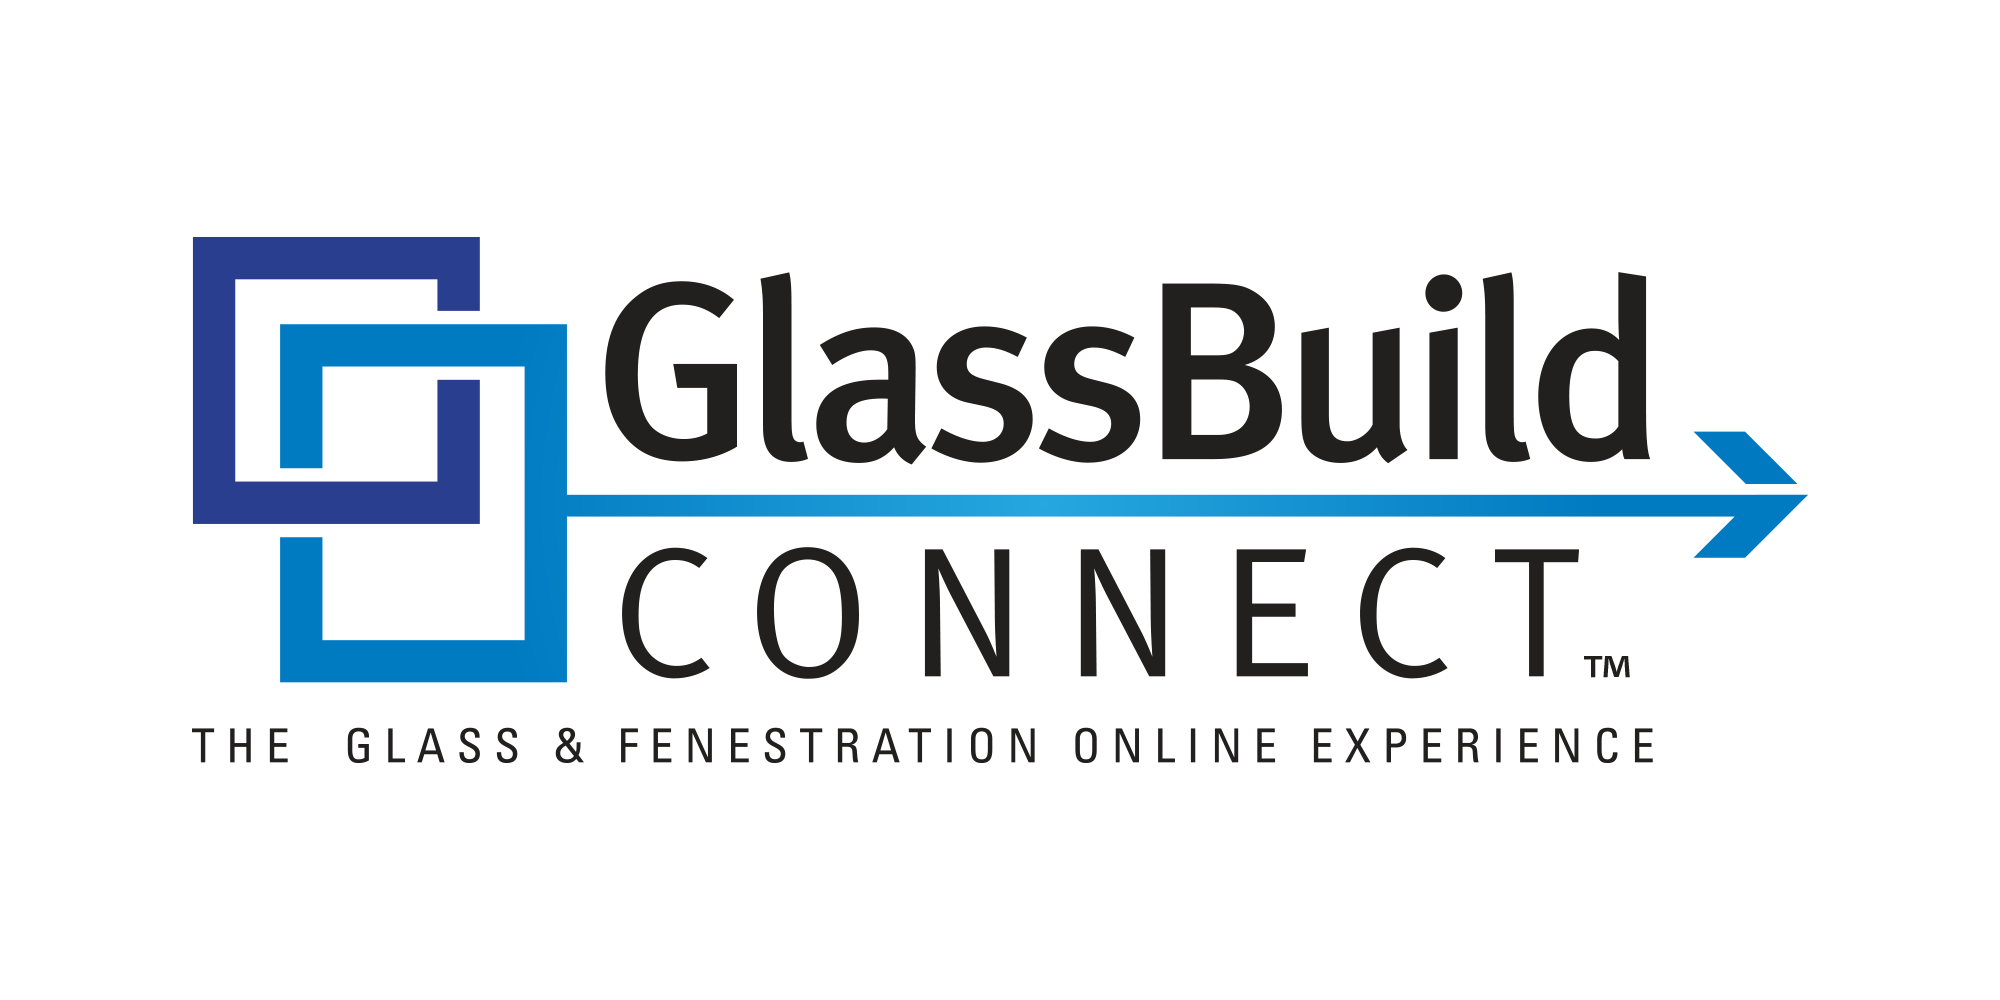 Registration Now Open for GlassBuild Connect: The Online Glass & Fenestration Online Experience